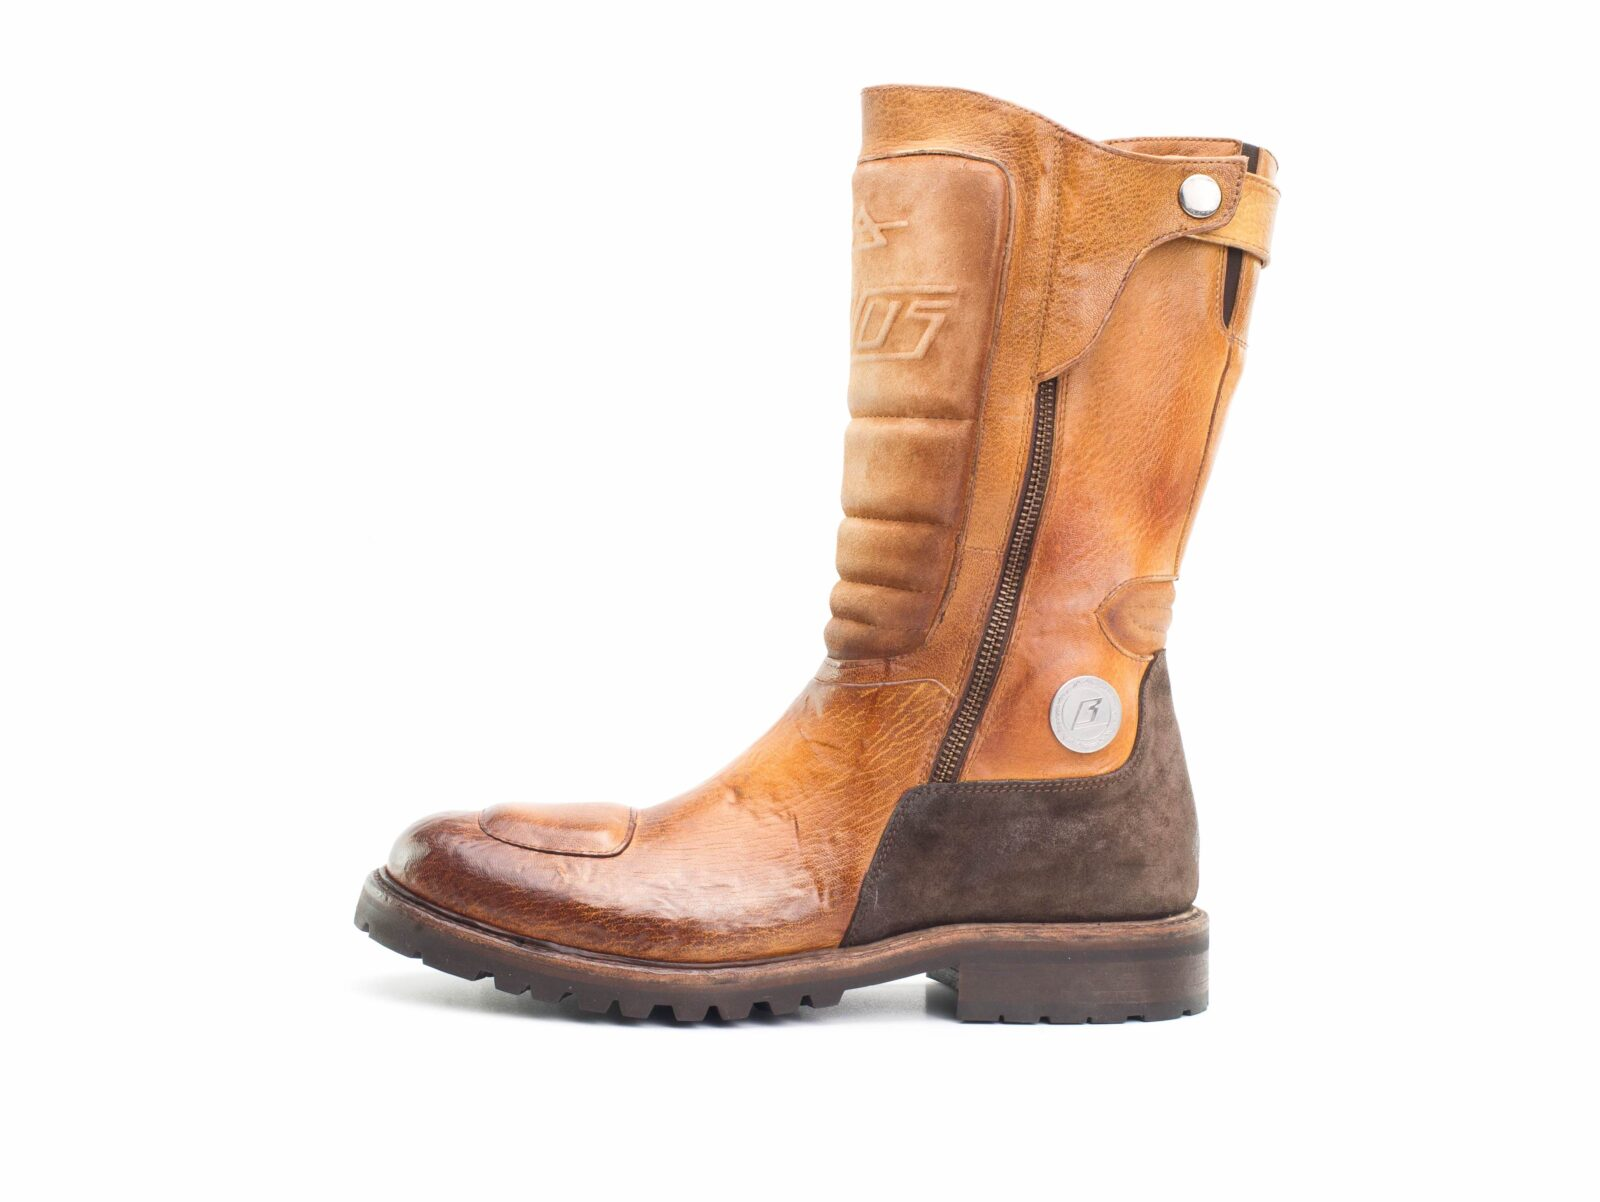 Brutus Rampante Off-Road Motorcycle Boots